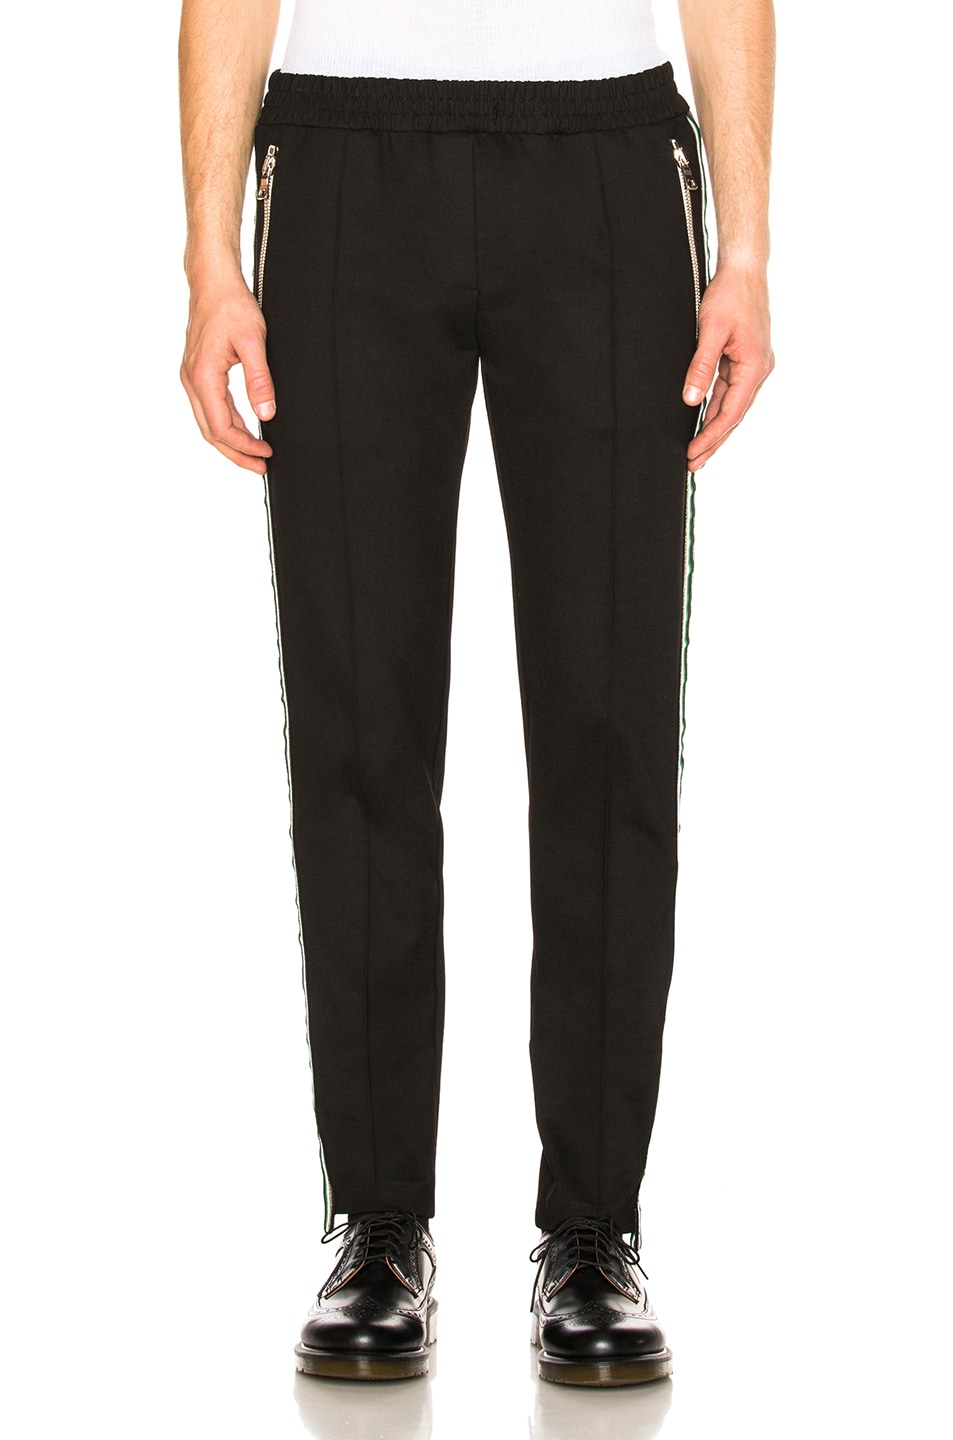 Image 2 of Rhude Traxedo Pant in Black & Green & Gold